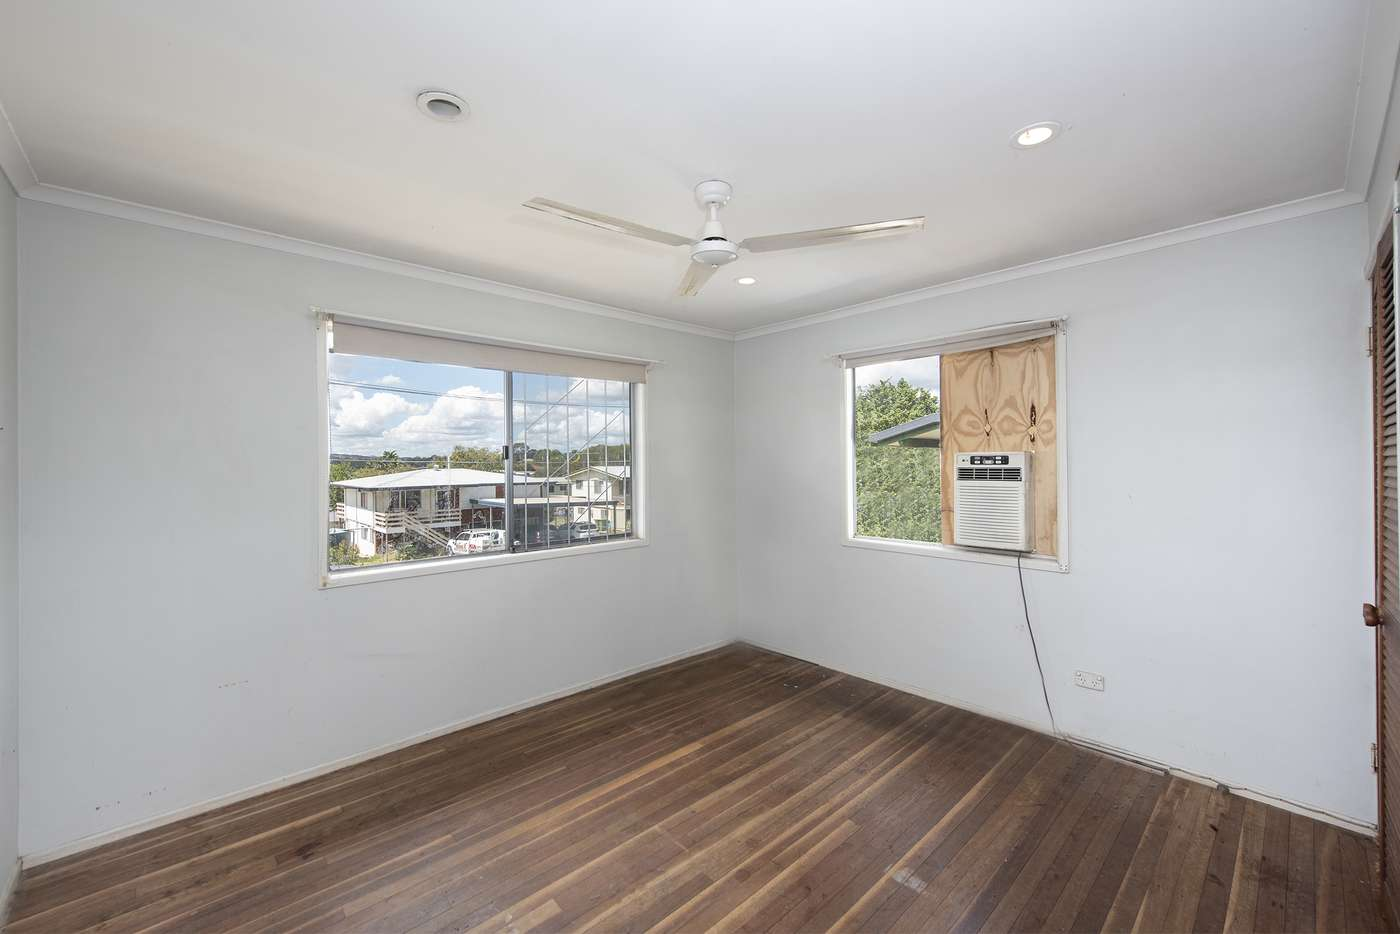 Seventh view of Homely house listing, 5 Langridge St, Raceview QLD 4305